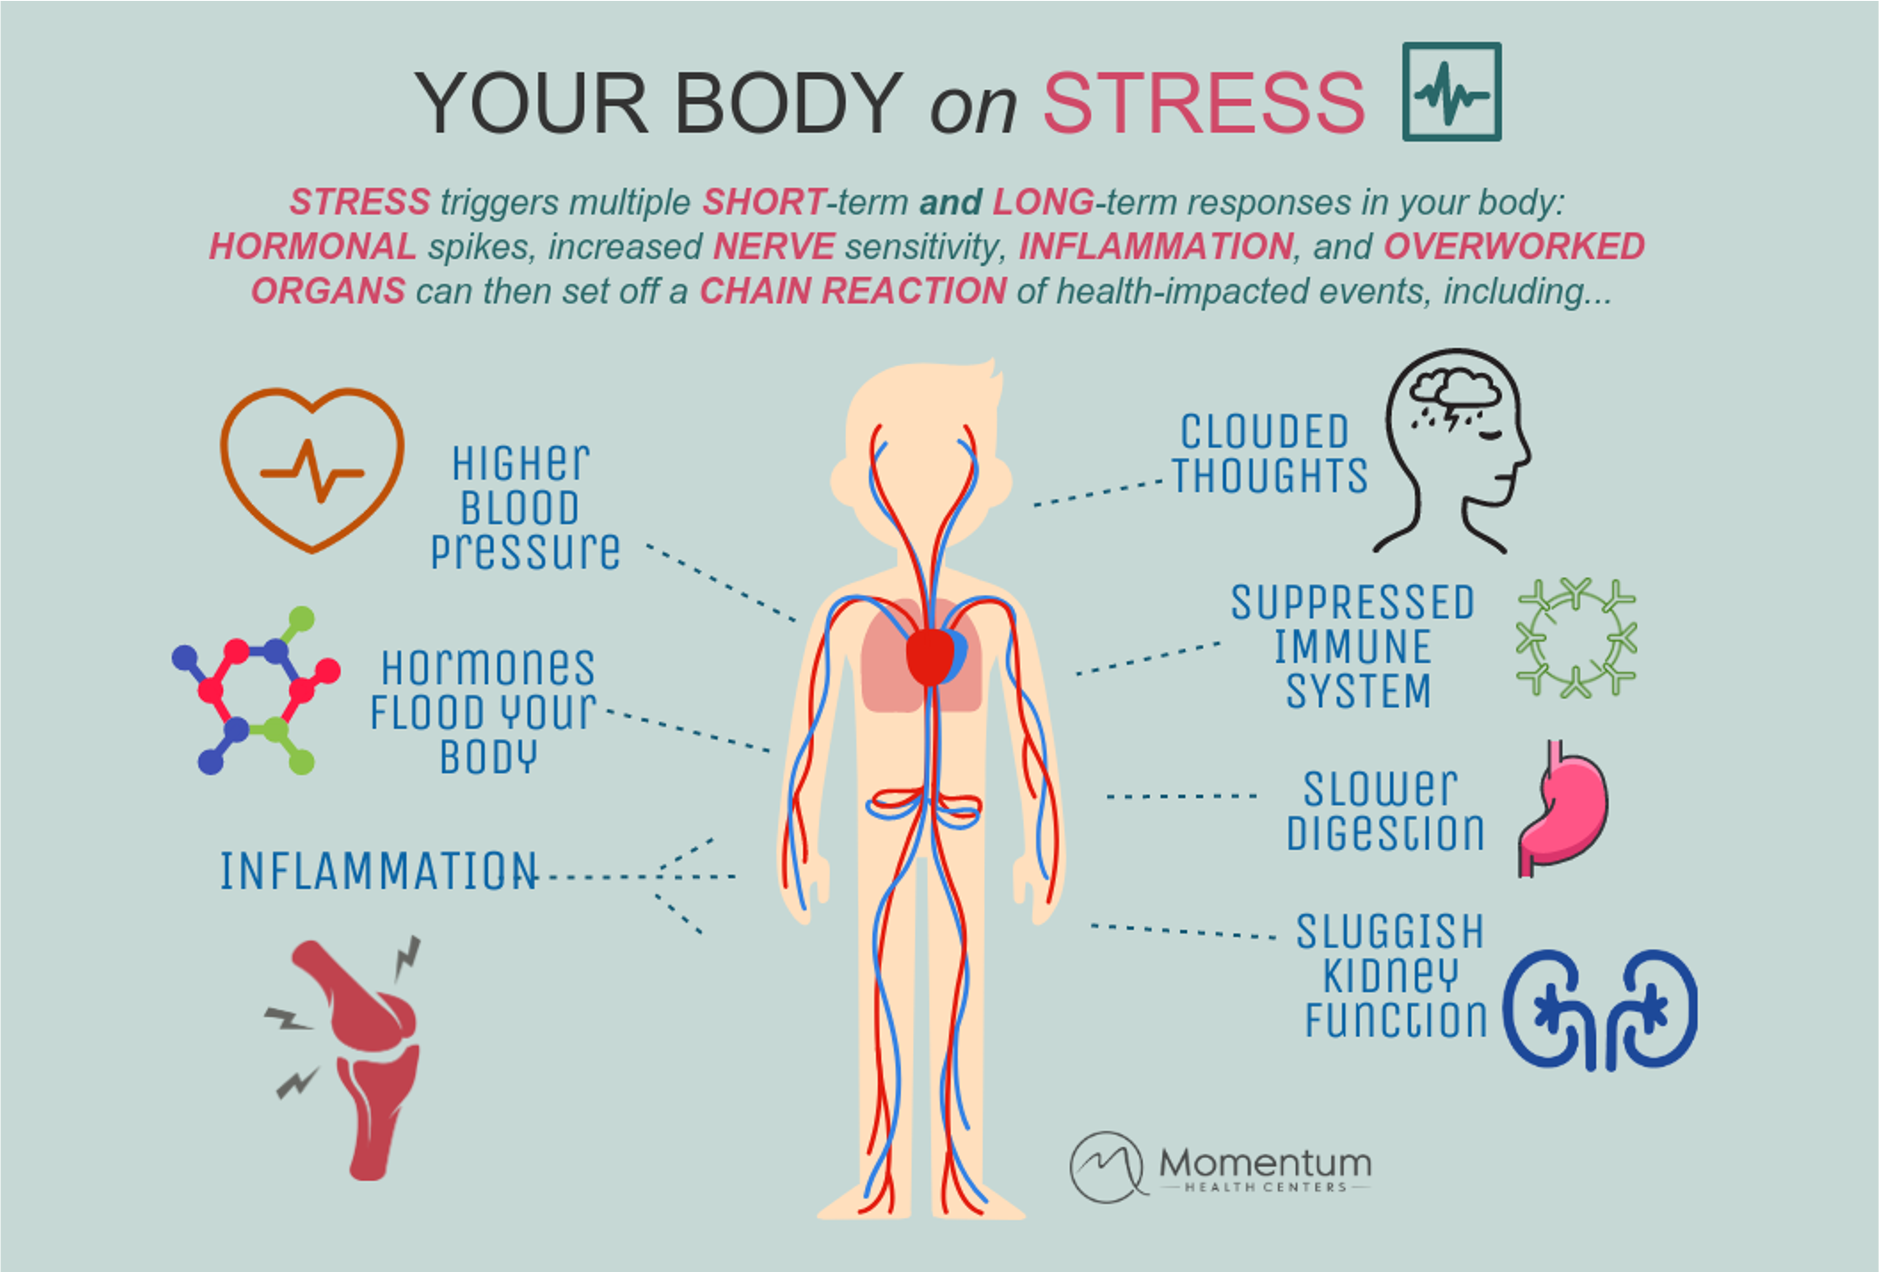 YOUR_BODY_ON_STRESS